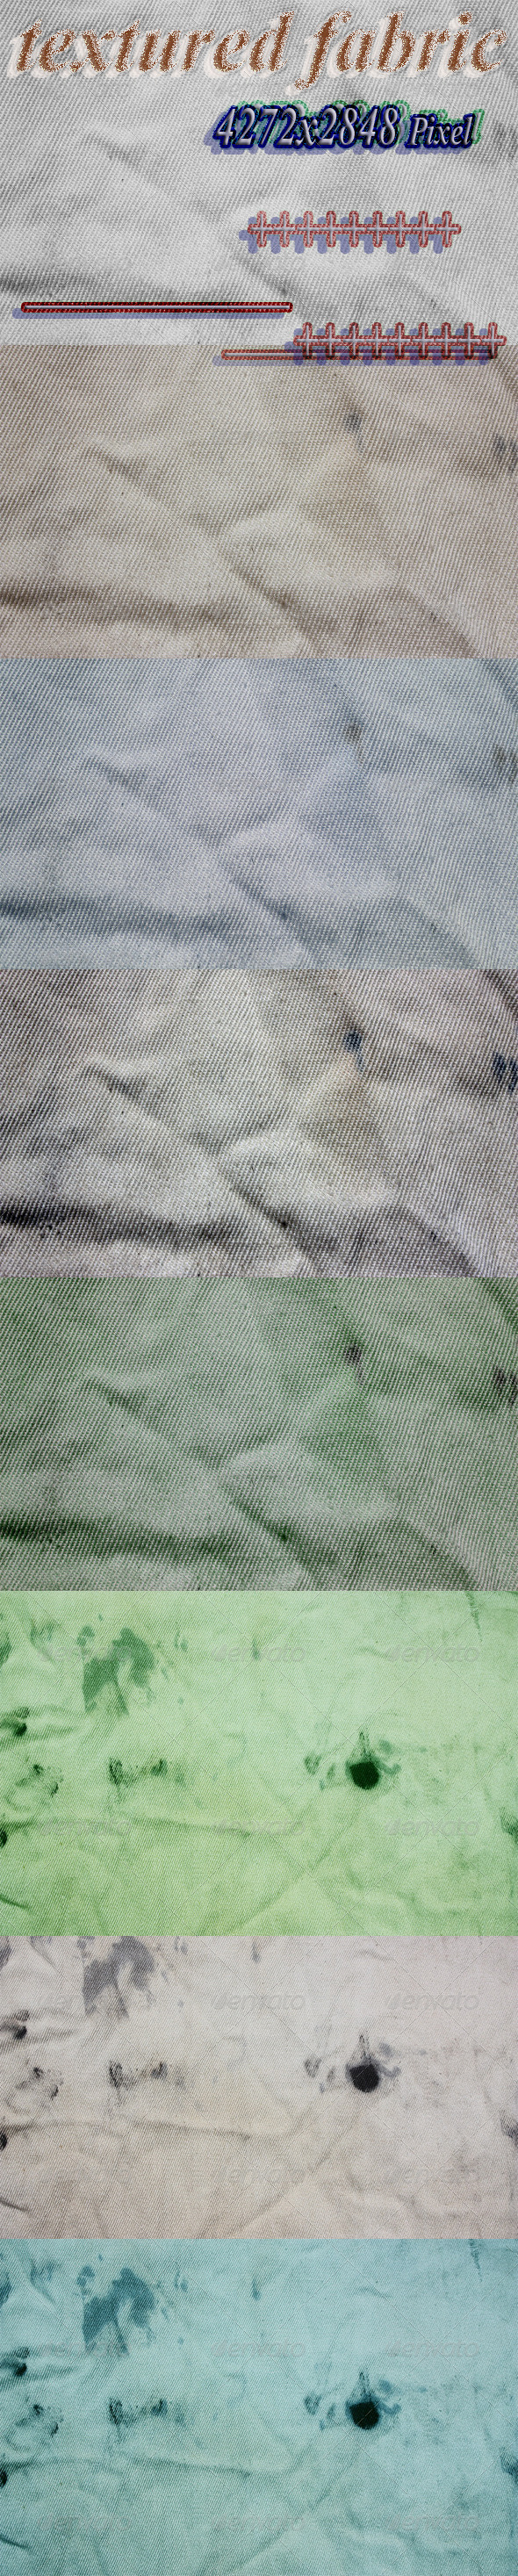 Textured fabric - Backgrounds Graphics